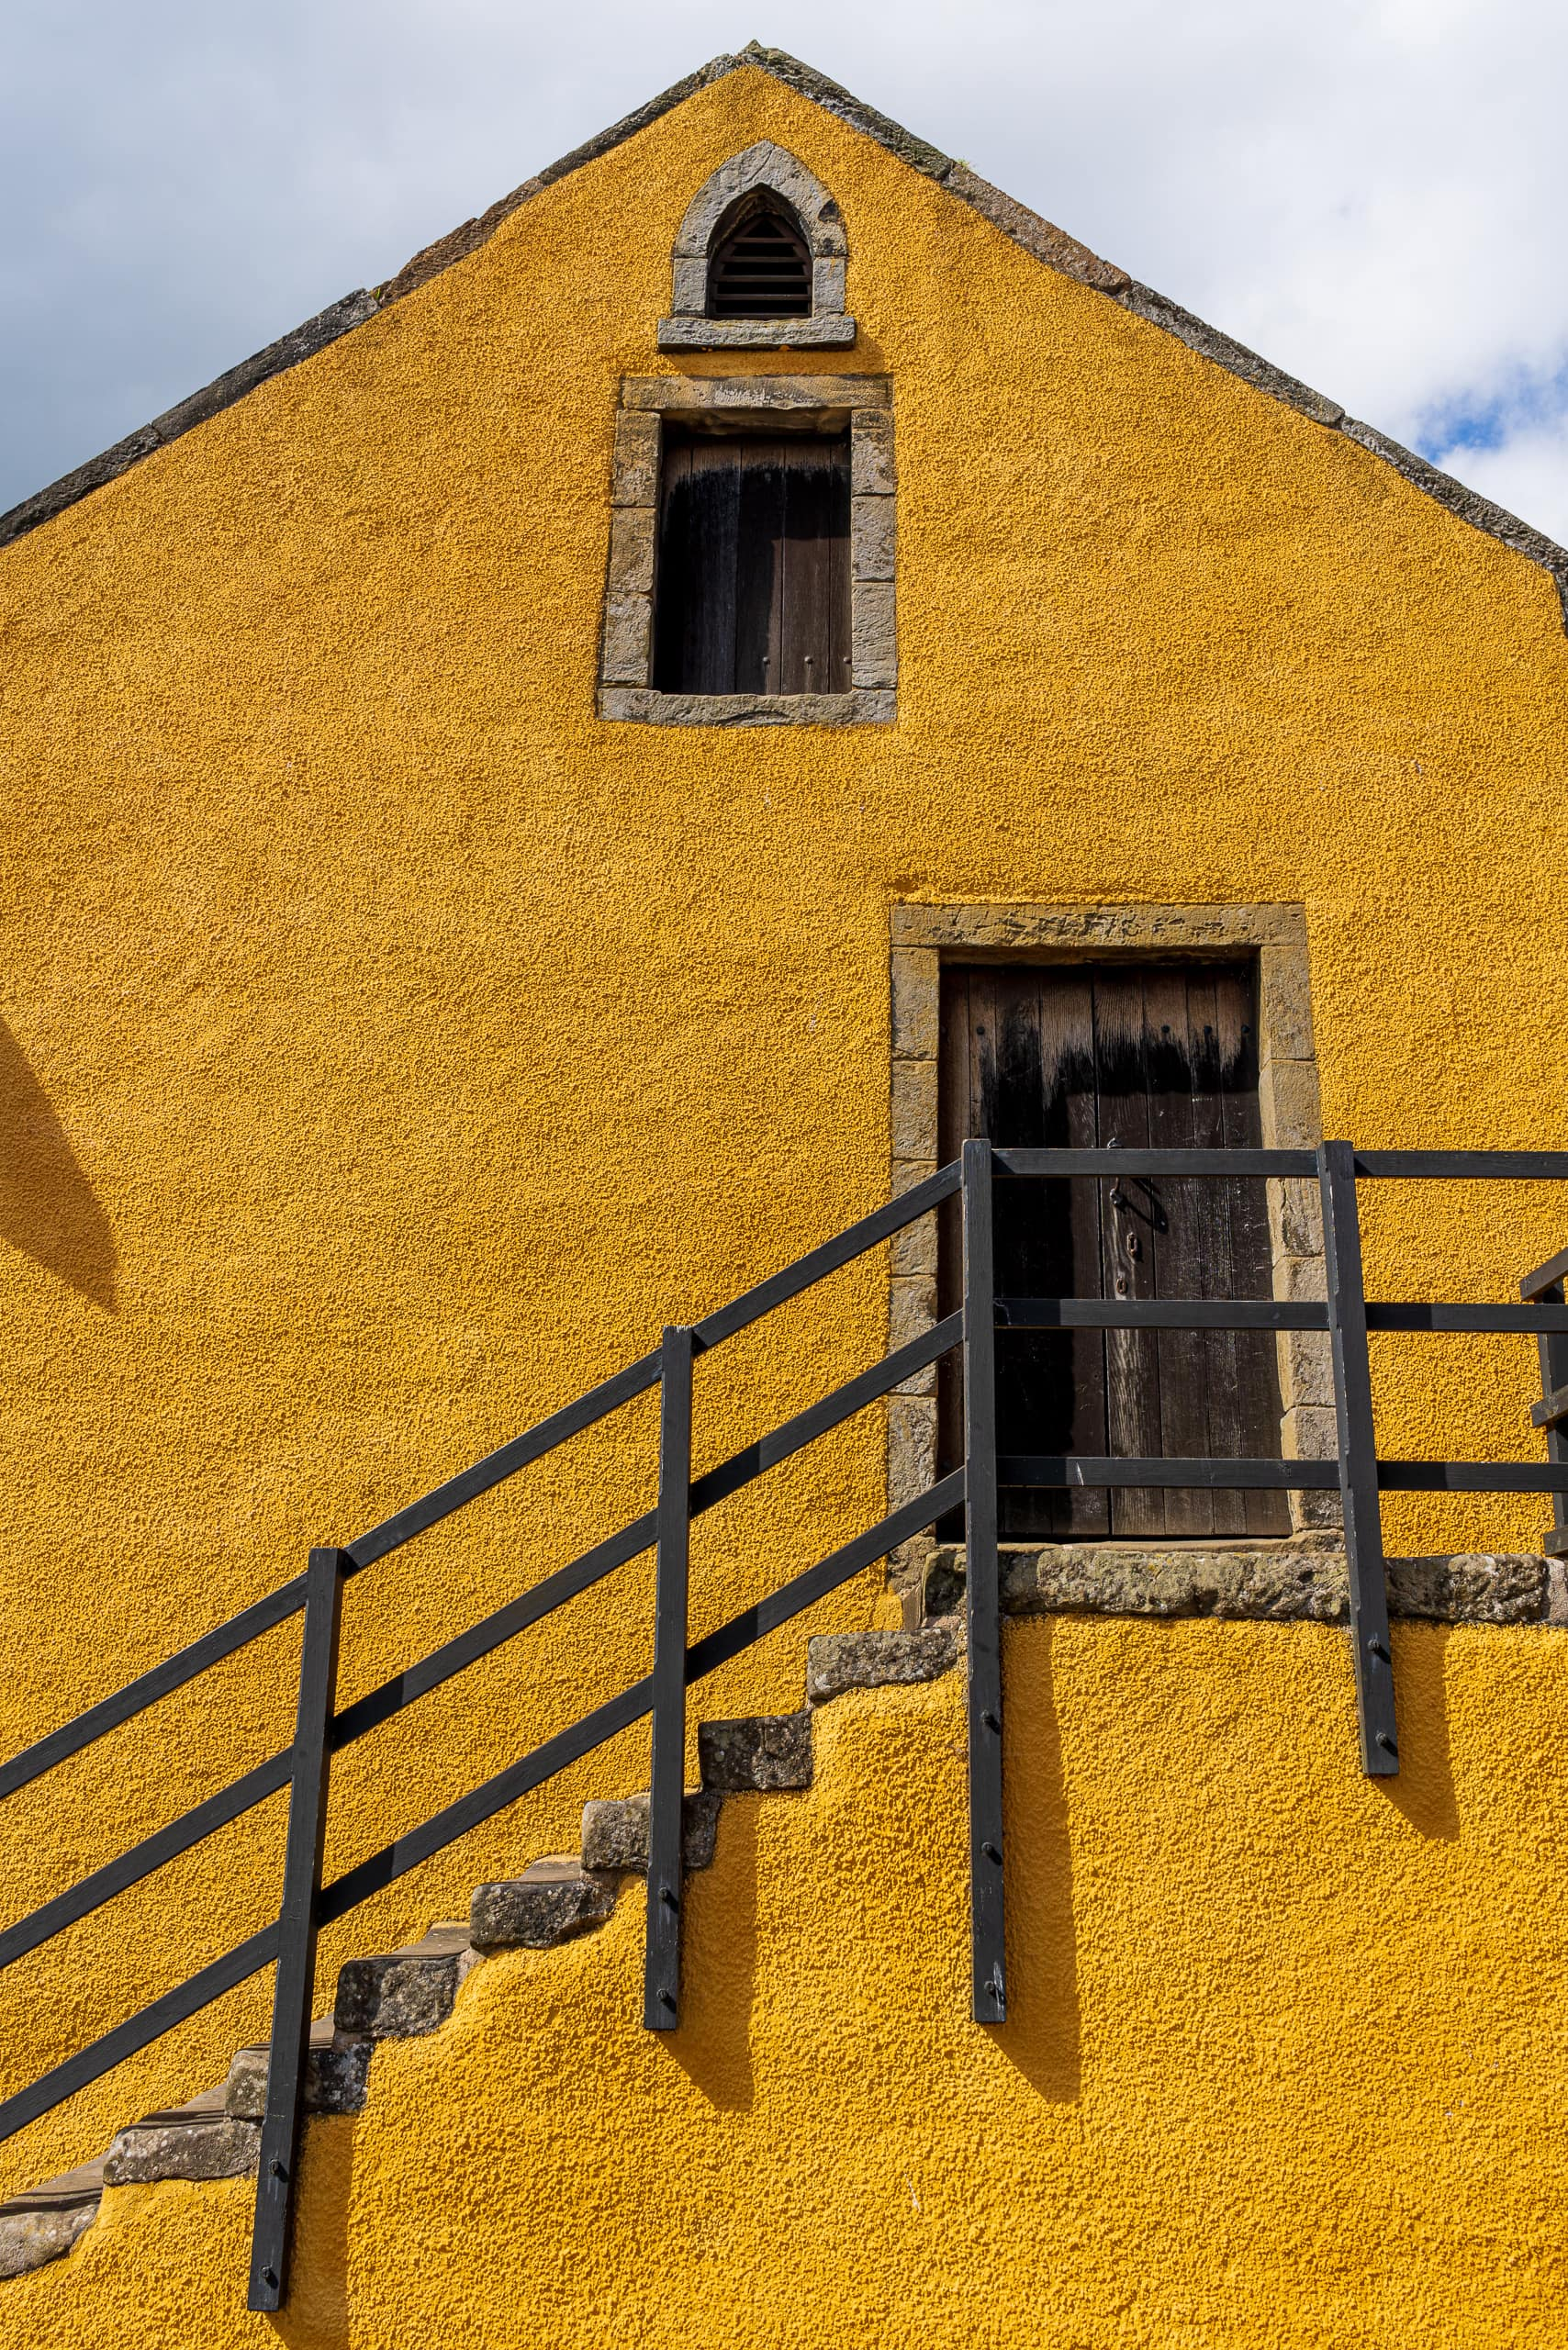 House in Culross | f/8 1/250sec ISO-100 28mm  | ILCE-7RM3 | 2019-06-30 15:13:36